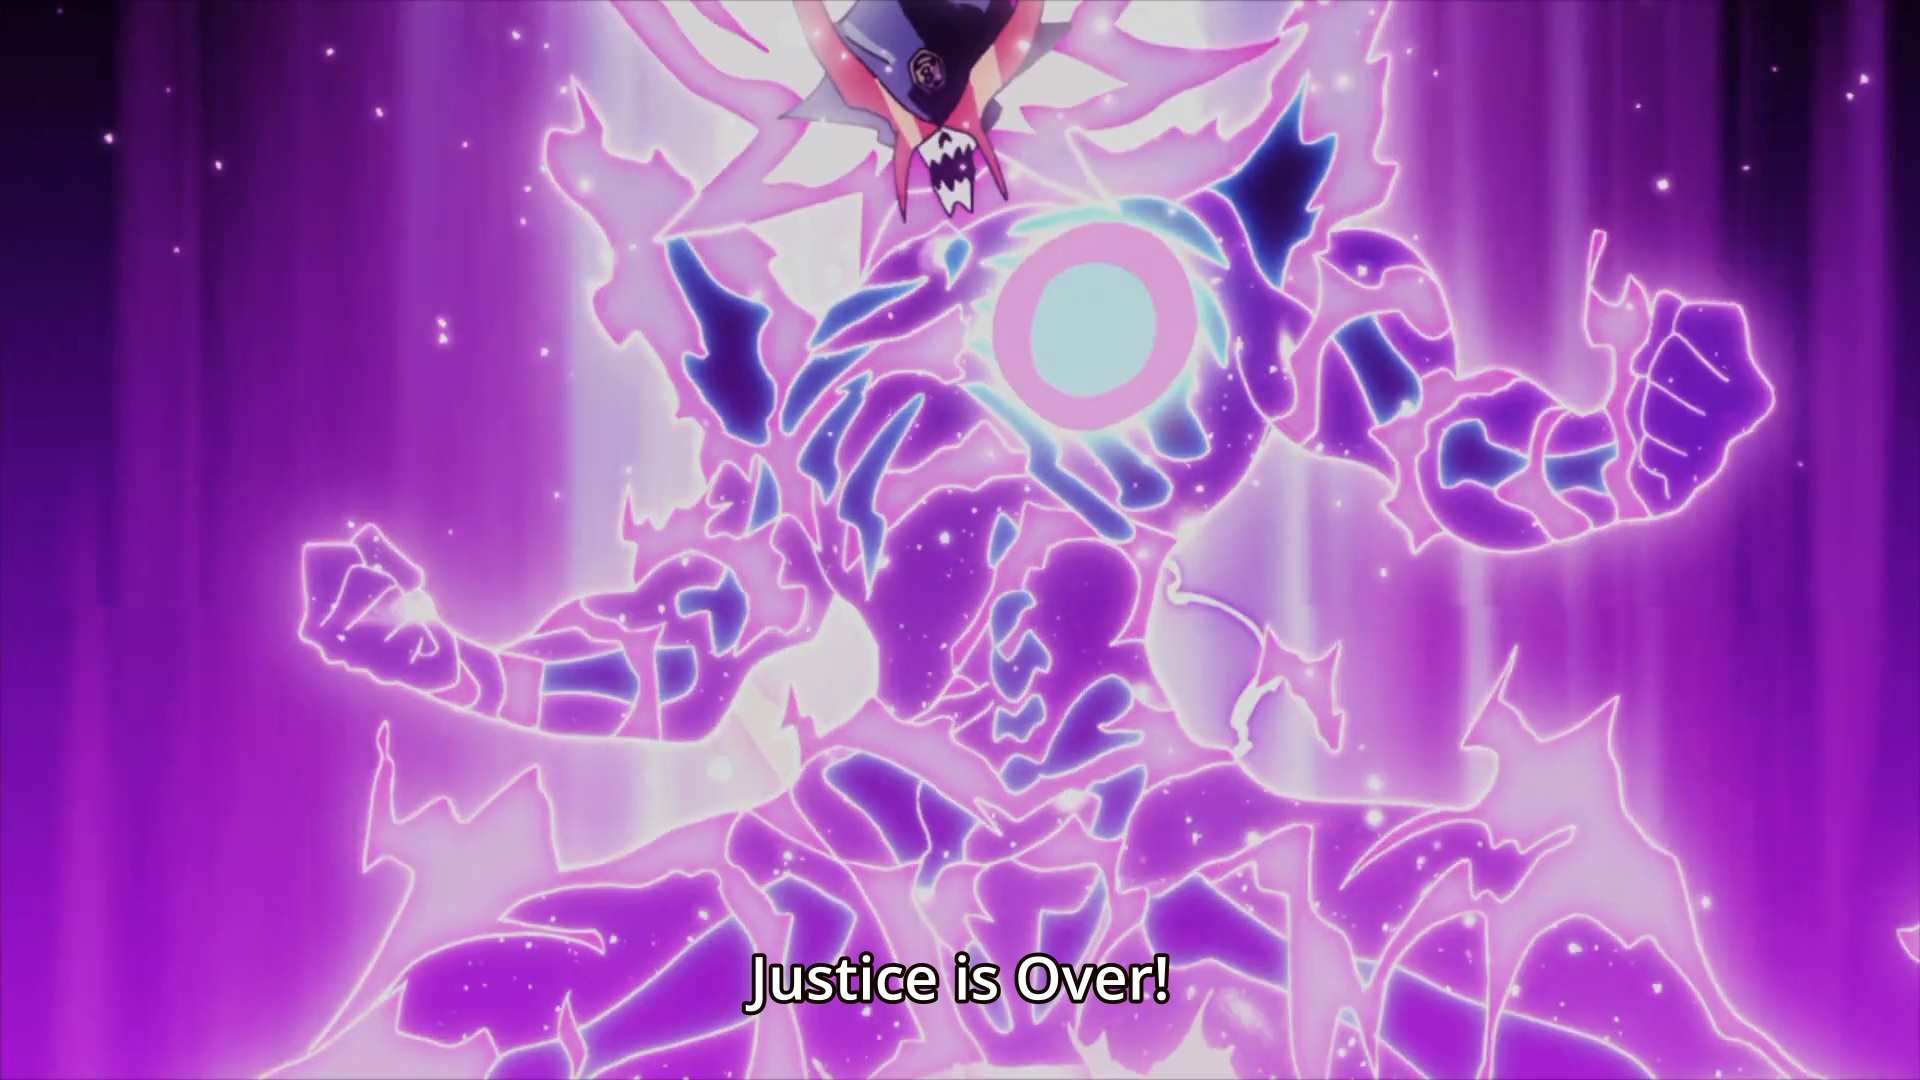 image of OVER JUSTICE